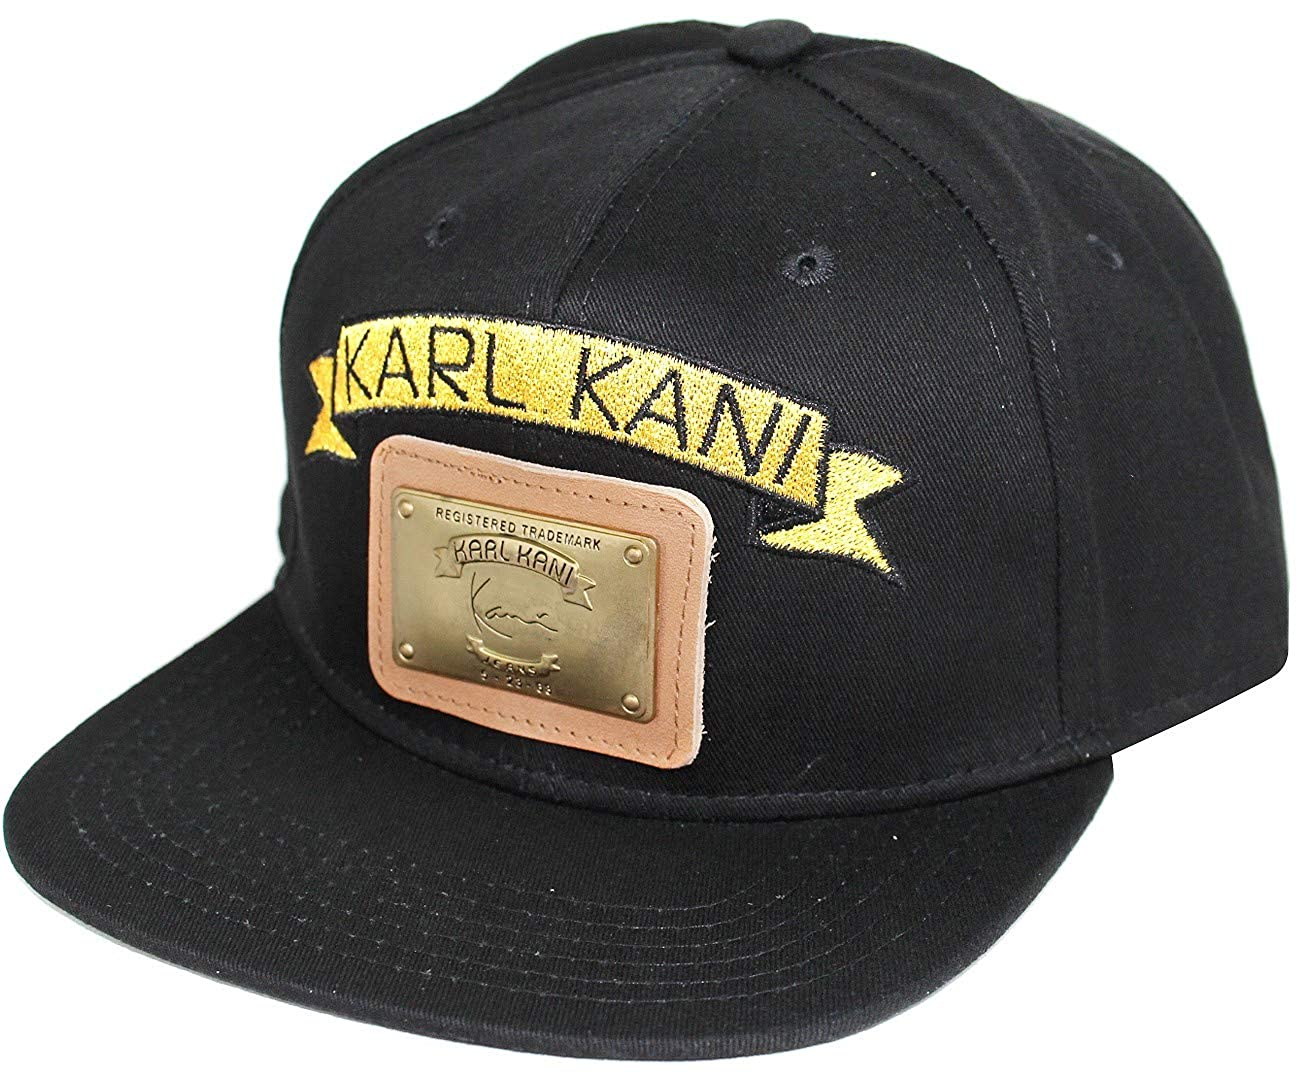 Karl Kani Gold Plate Snapback Embroidered Hat Black White Red Tan at Amazon  Men s Clothing store  b64deefb1053